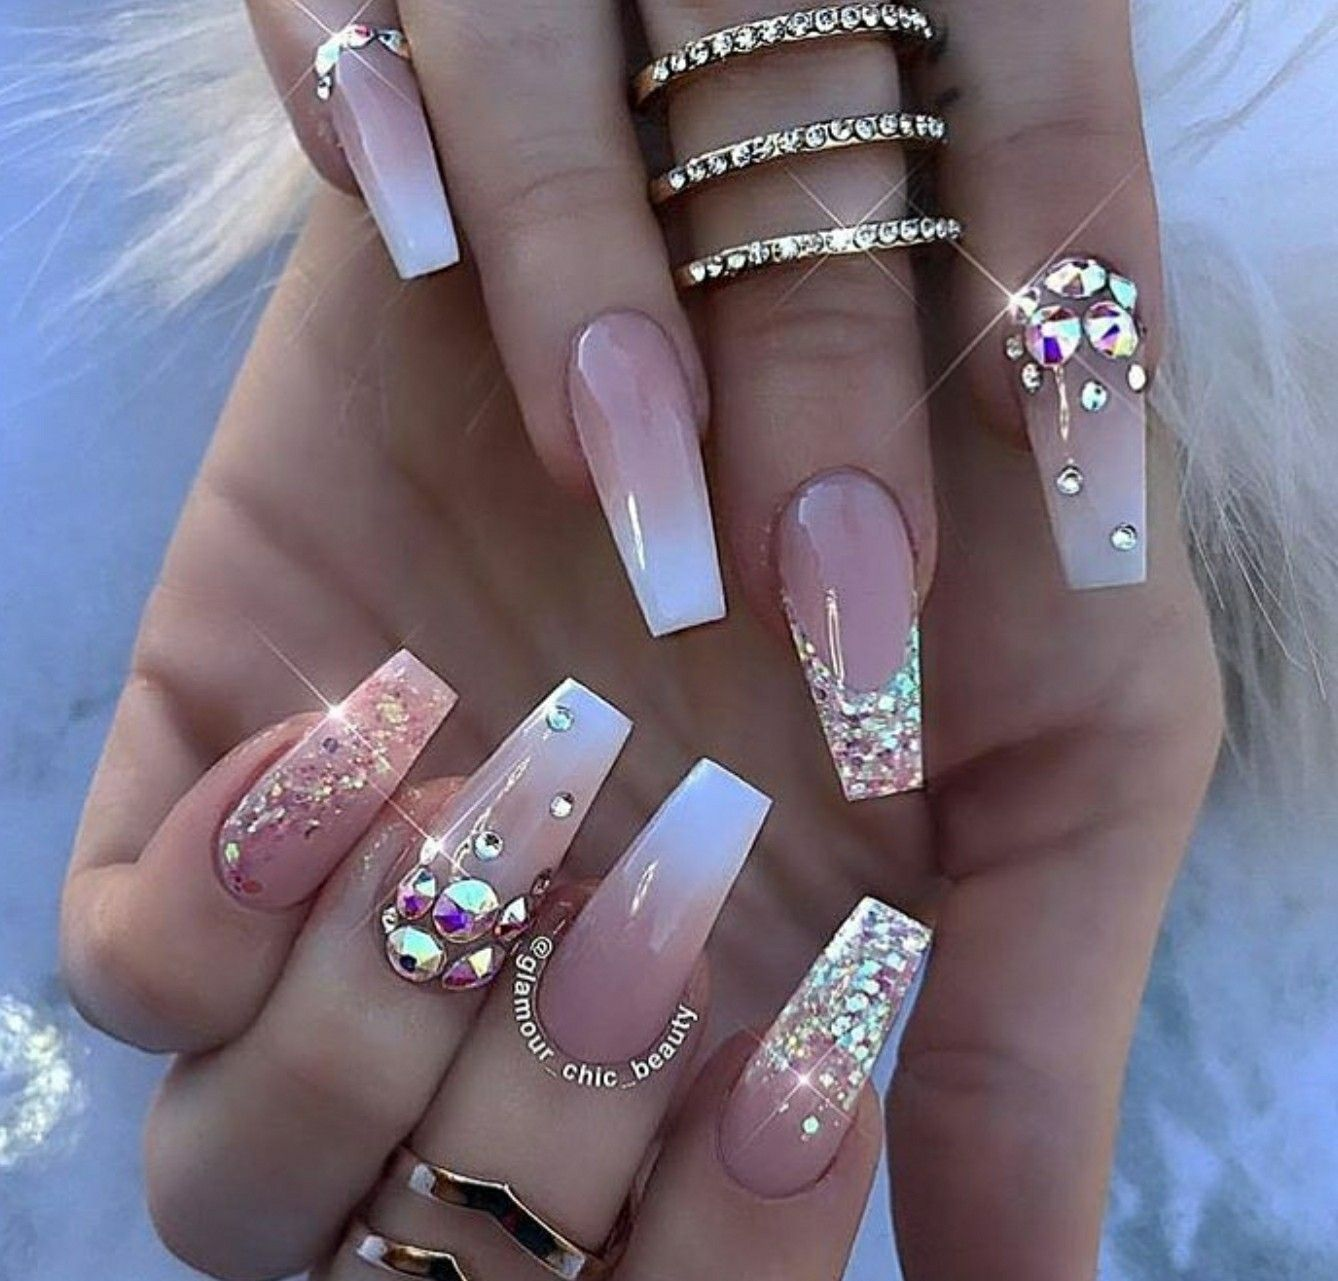 Tapered Square Nails Ombre Nails Glitter Nails Nails With Rhinestones Acrylic Nails Tapered Square Nails Luxury Nails Cute Acrylic Nails